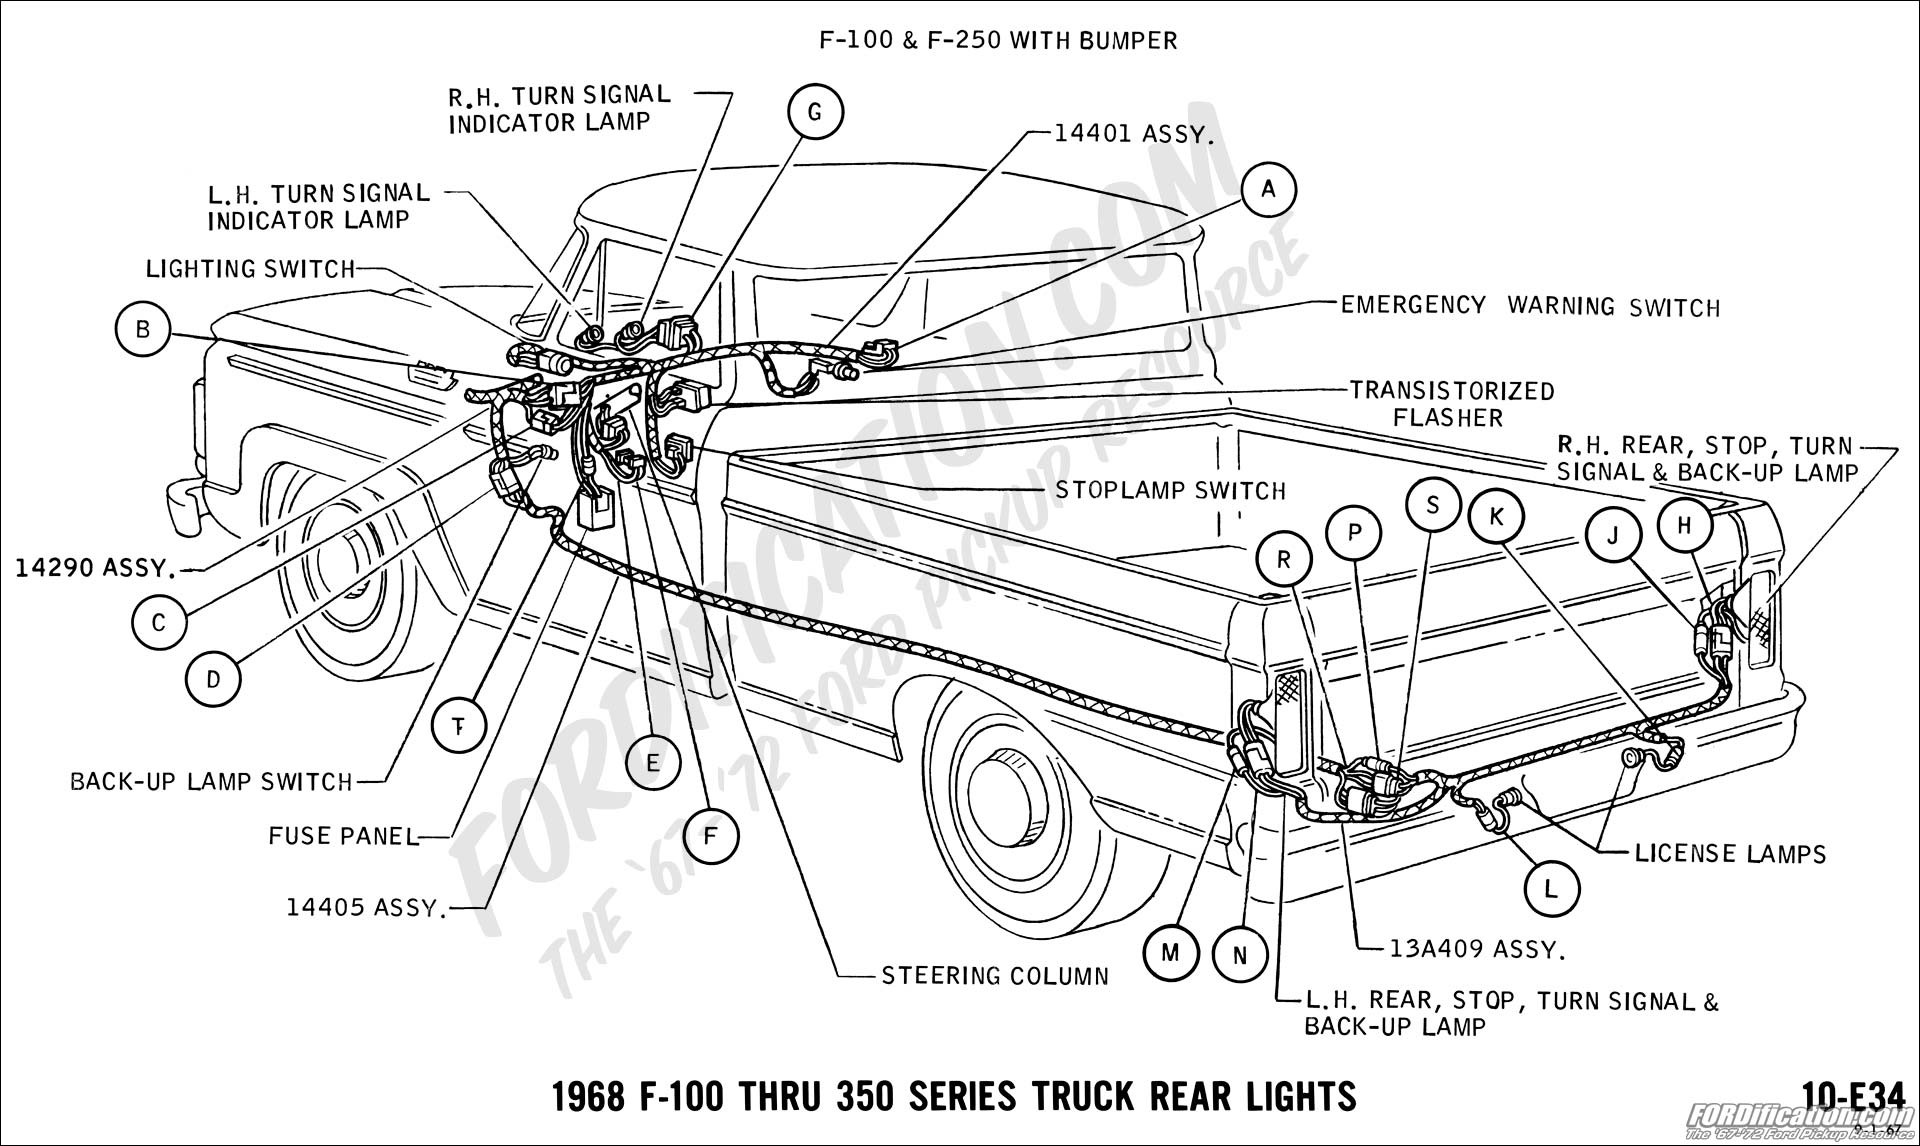 Dodge Ram Parts Diagram Lifted fords ford Under the Hood Pinterest Of Dodge Ram Parts Diagram